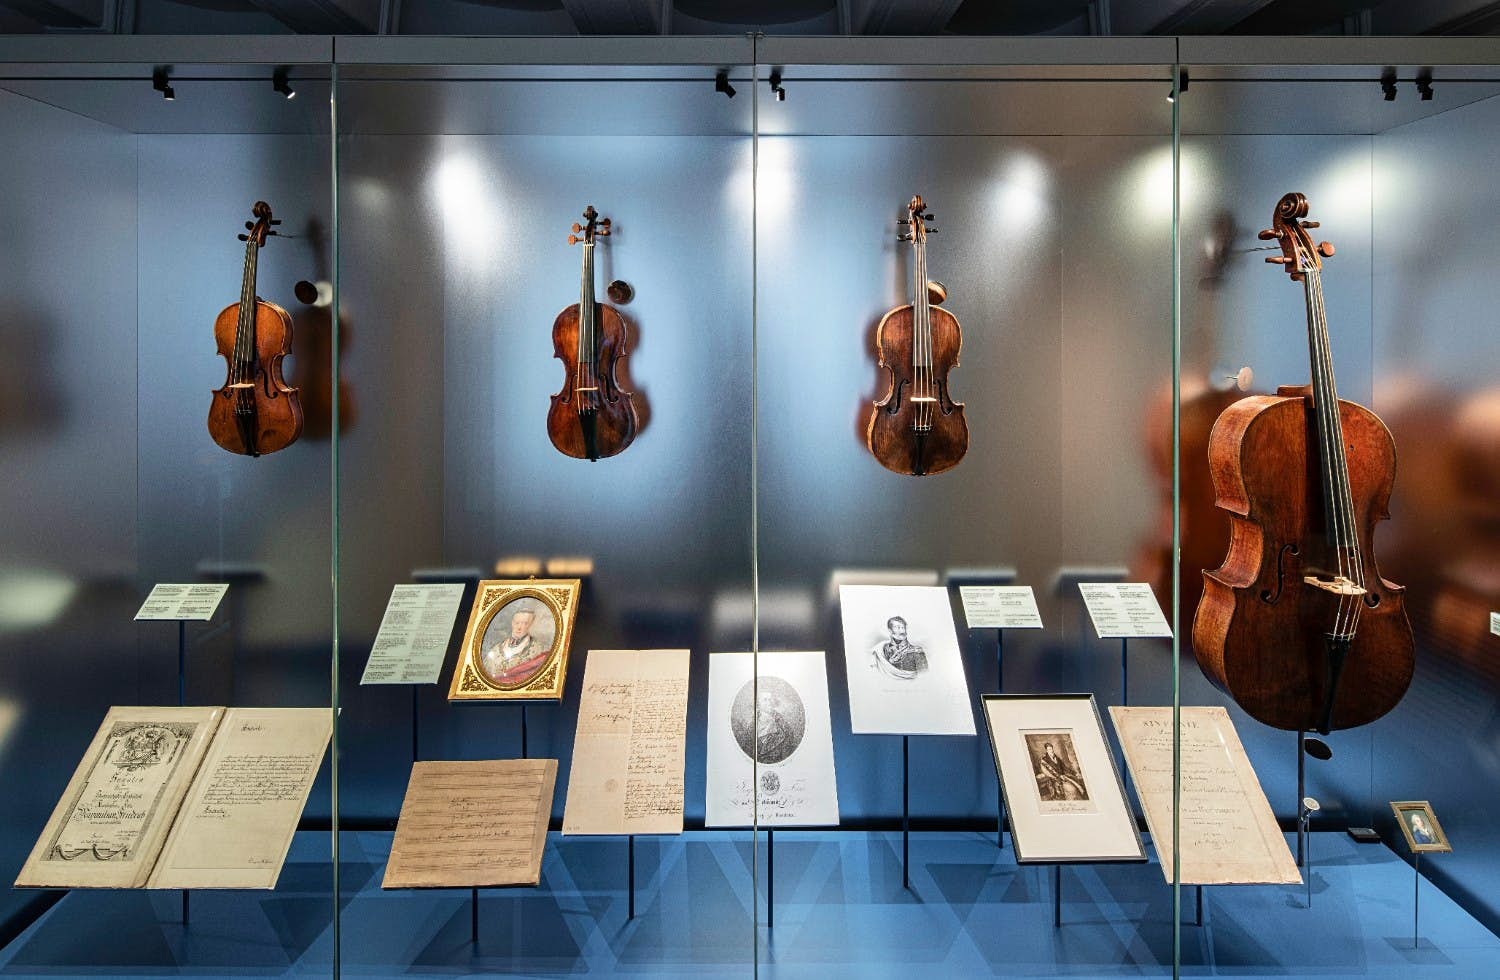 Exhibits on display at Beethoven Haus